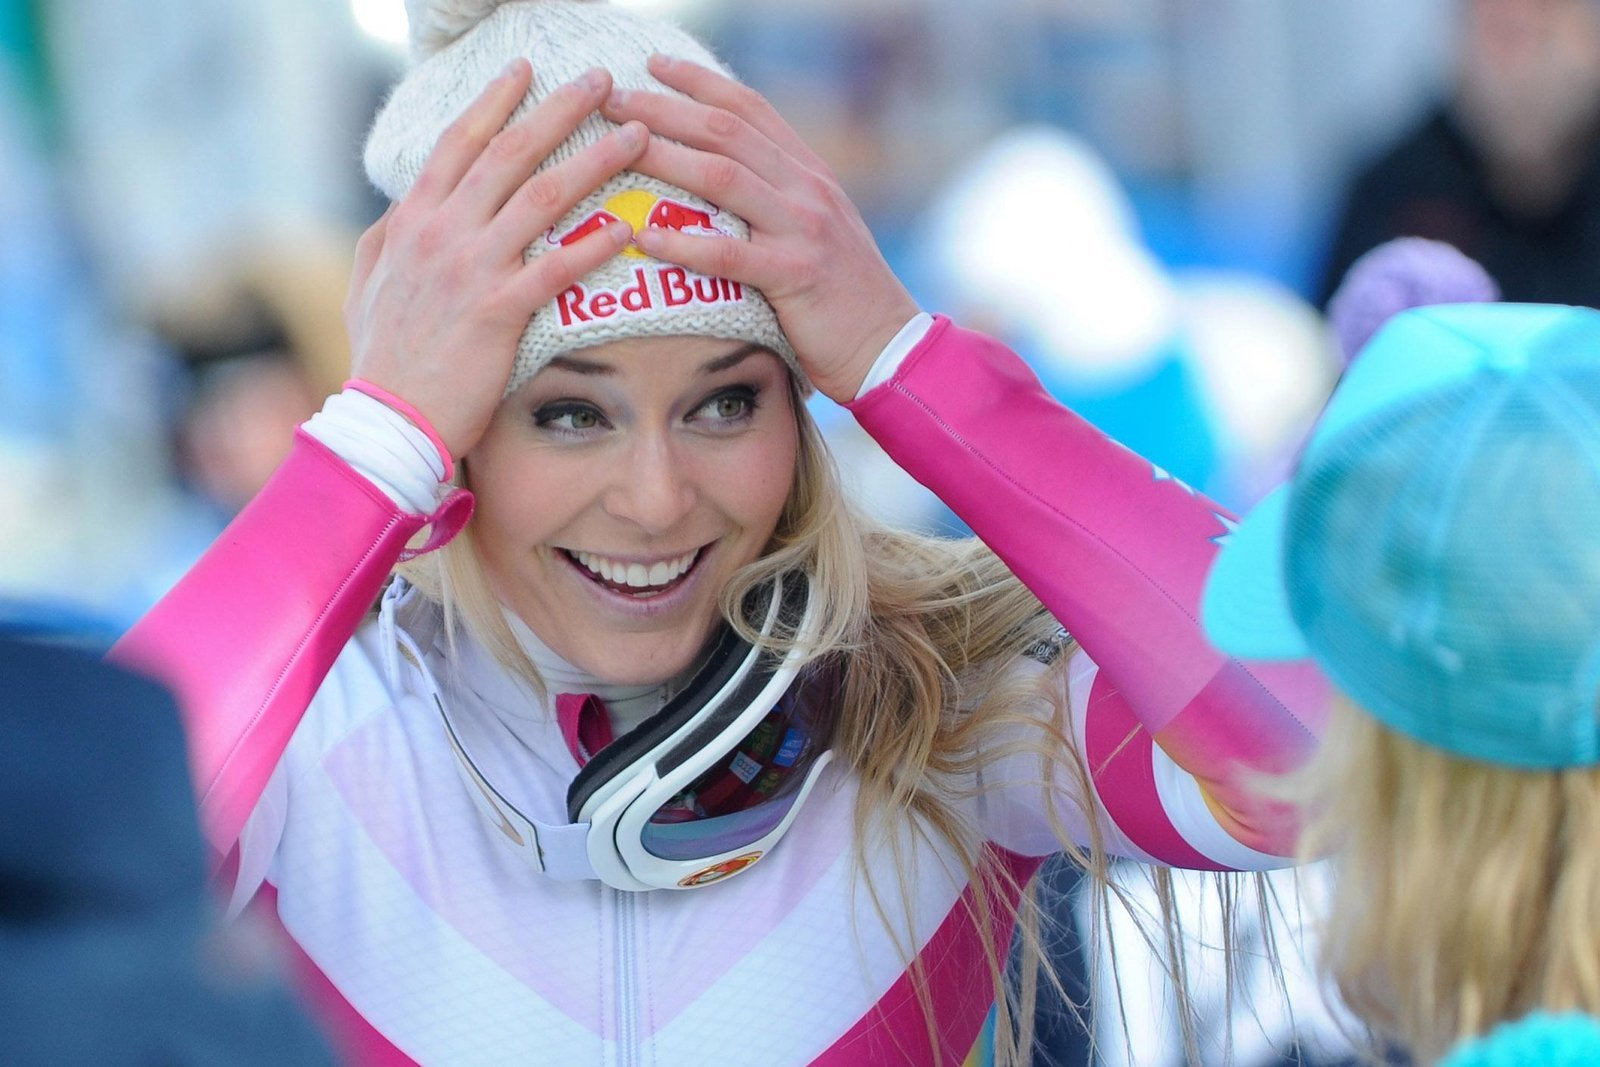 """Lindsey Vonnmadeheadlines months ago, when she said that she would not travel to the White House to celebrate her victories after the Winter Olympics. Now that Vonn has suffered a major setback by failing to medal in the Super-G, the internet is not letting the skier forget her past statements. """"I hope torepresentthe people of …"""